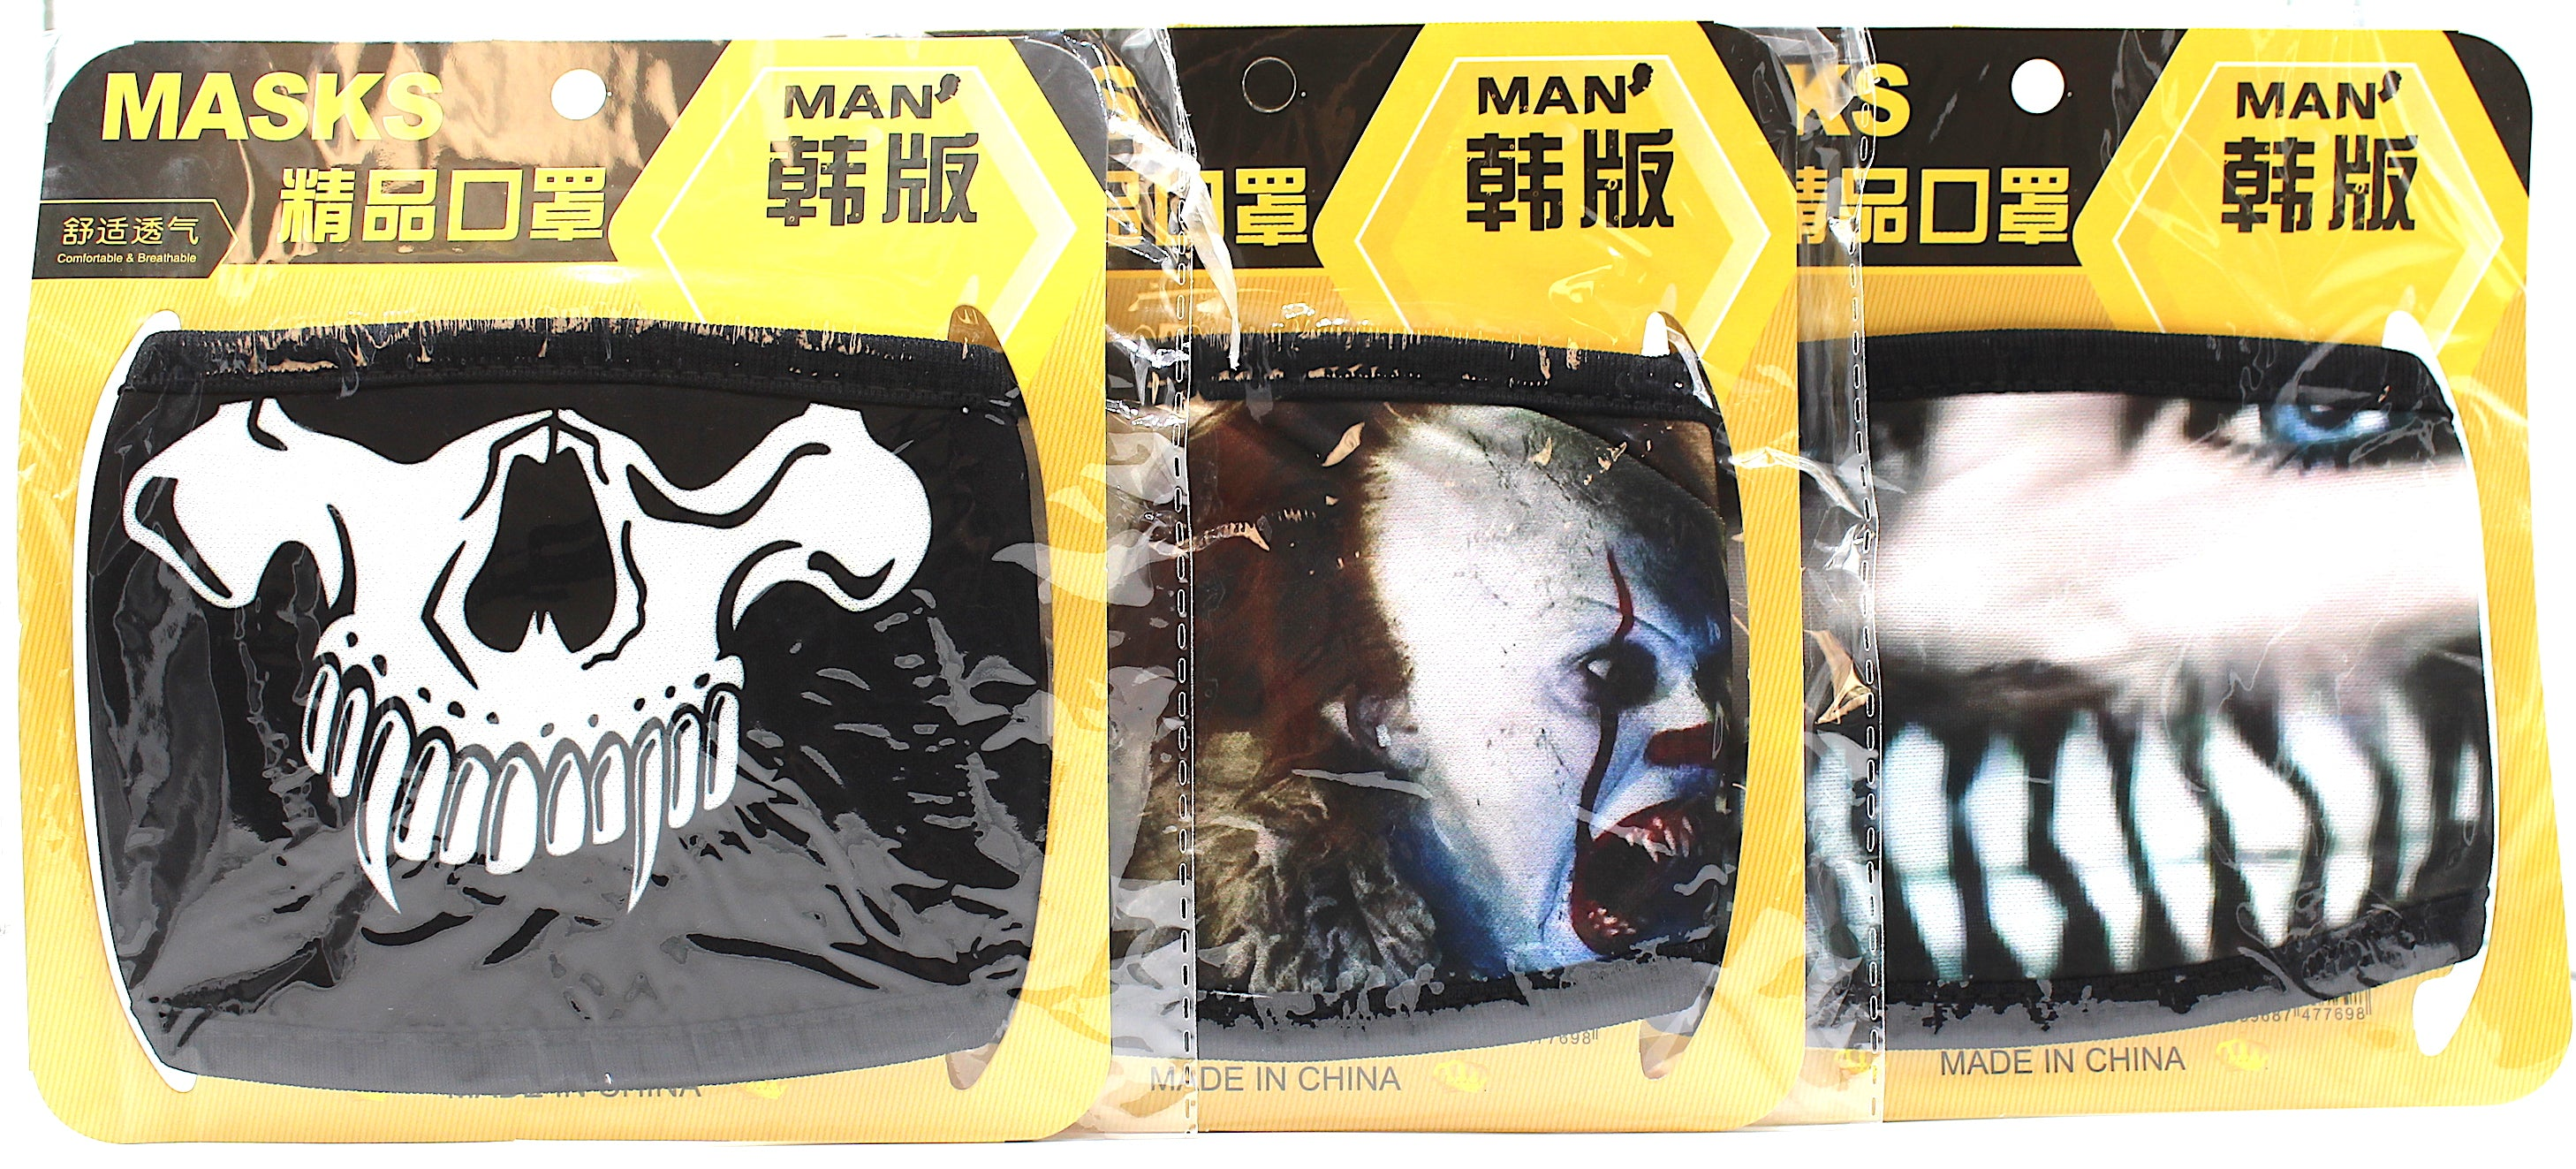 MASKS CLOTH MATERIAL Characters  Designed 3 mask per pack